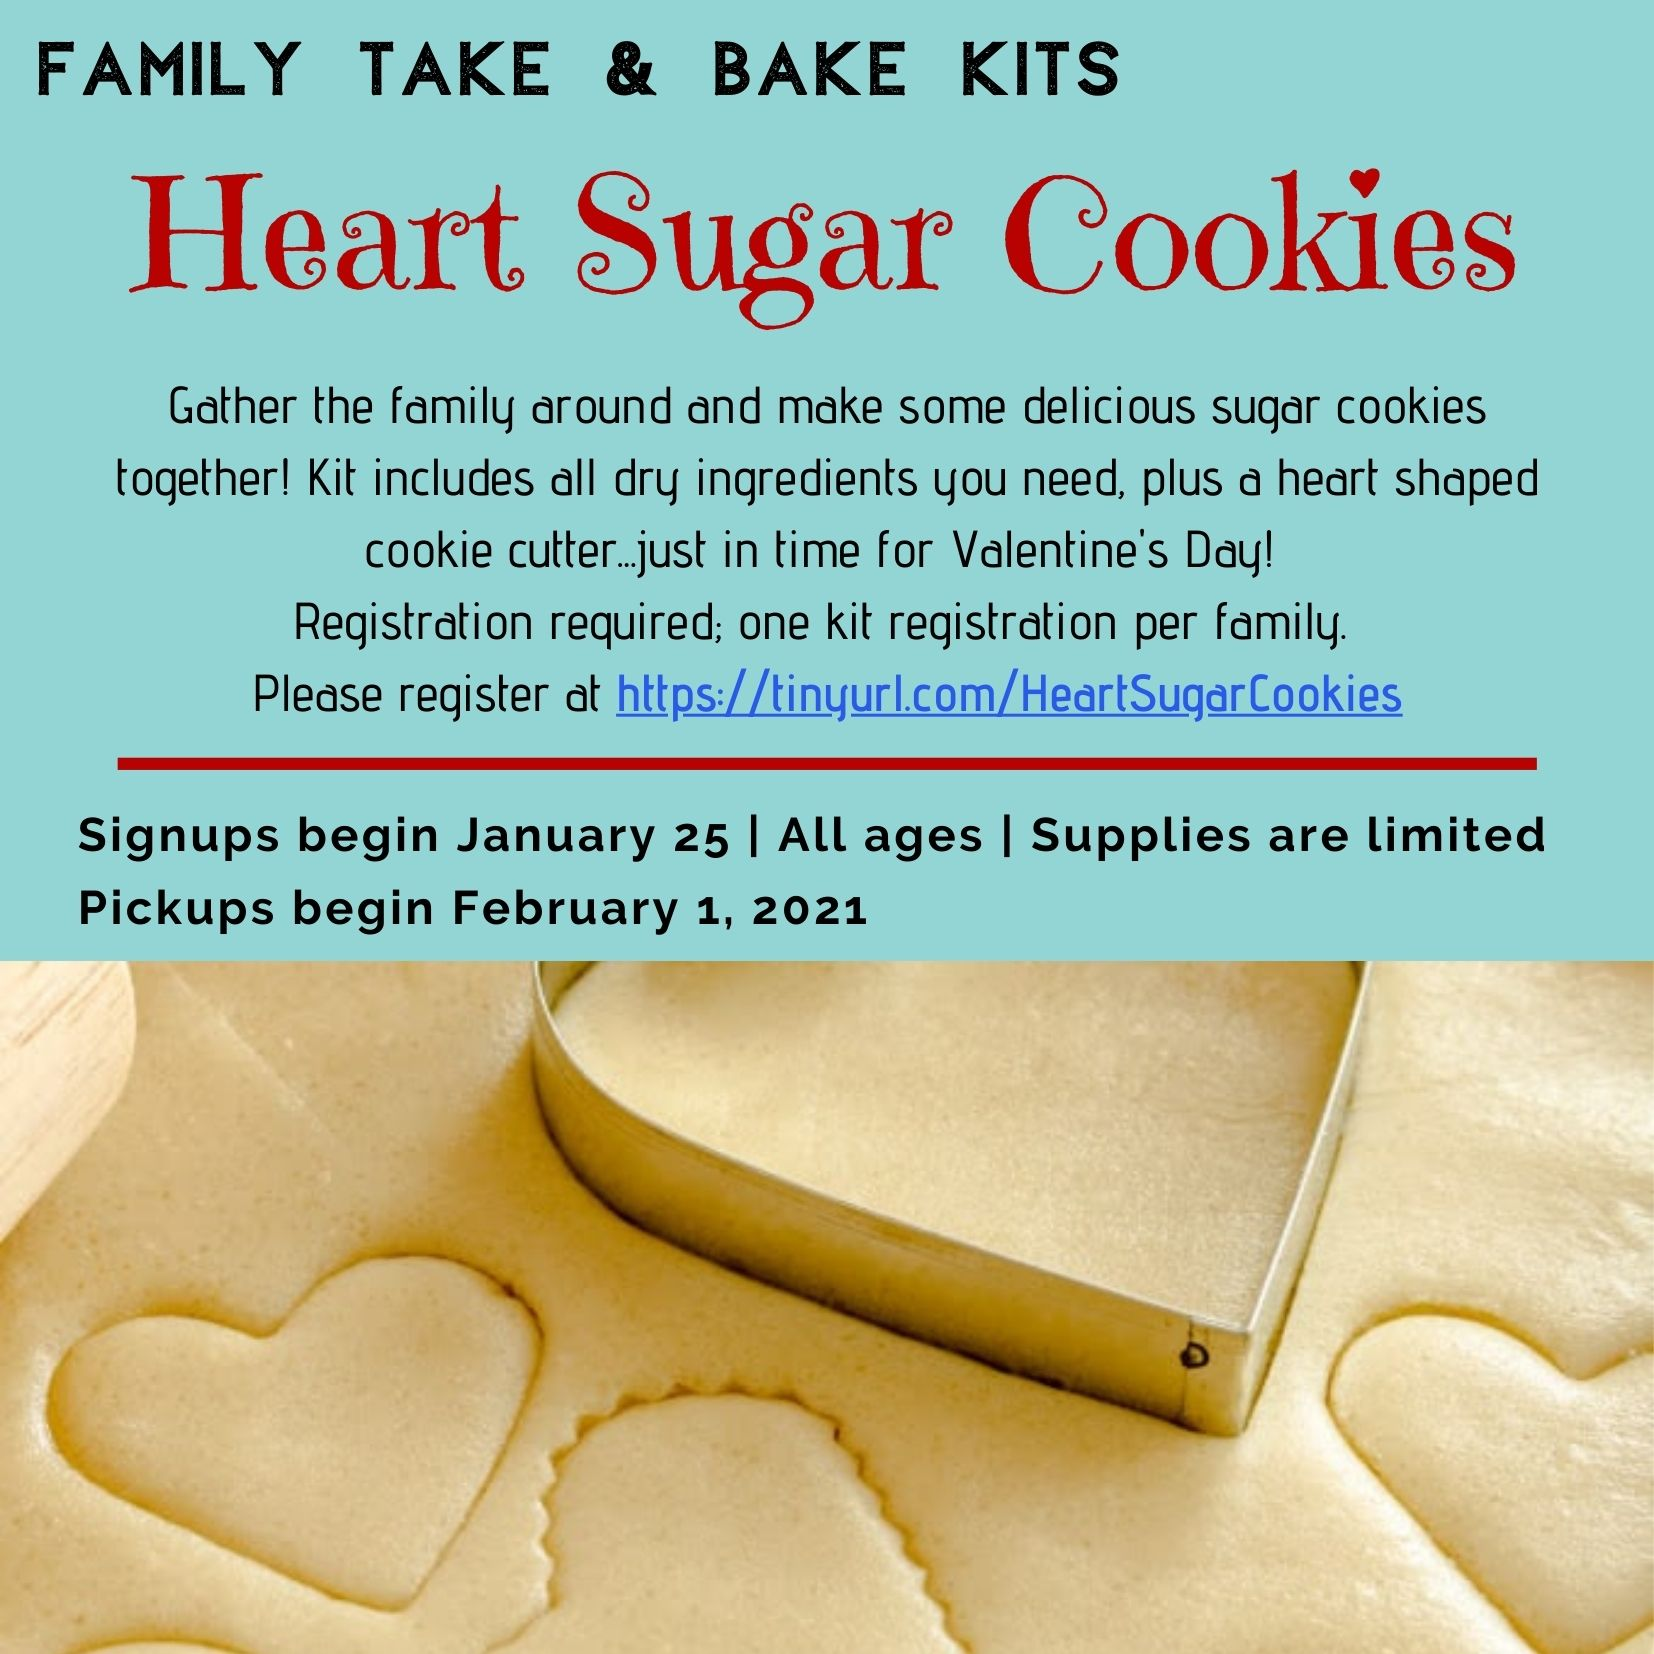 Family Take & Bake Kit: Heart Sugar Cookies thumbnail Photo